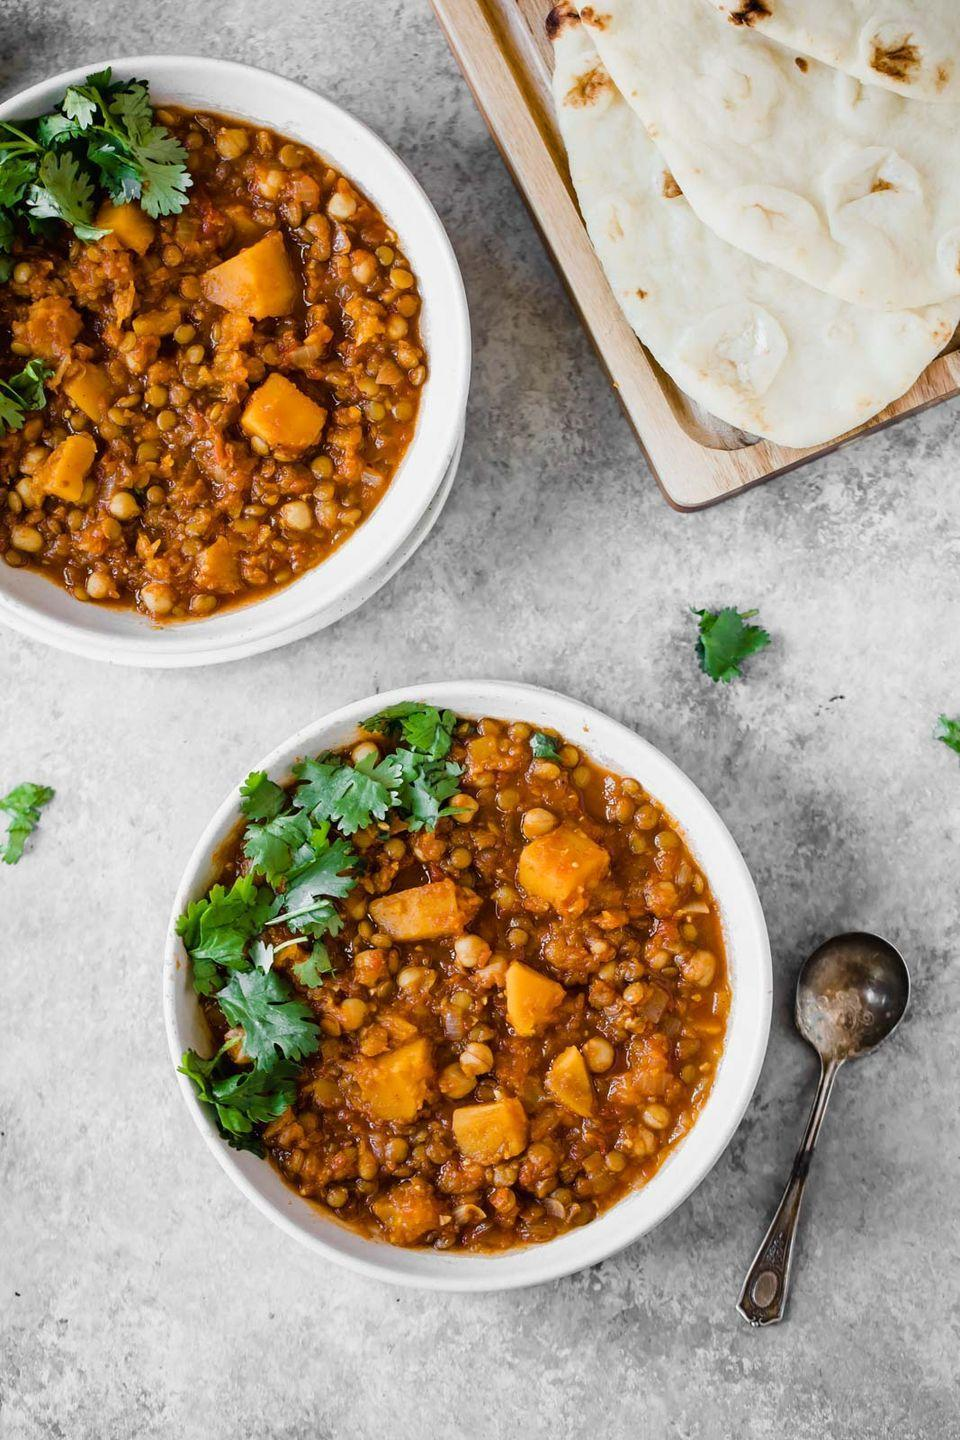 """<p>This hearty stew by<a href=""""https://www.ambitiouskitchen.com/butternut-squash-chickpea-lentil-moroccan-stew/"""" rel=""""nofollow noopener"""" target=""""_blank"""" data-ylk=""""slk:Ambitious Kitchen"""" class=""""link rapid-noclick-resp""""> Ambitious Kitchen</a> will not only warm you up on a chilly winter evening, but also it'll keep you full throughout the night, thanks to its high protein and fiber content. Fiber is particularly great for weight loss, as it slows digestion and helps limit mindless snacking. And the anti-inflammatory benefits from spices like turmeric, cumin, cayenne, and garlic will also speed the metabolism and promote weight loss.</p>"""